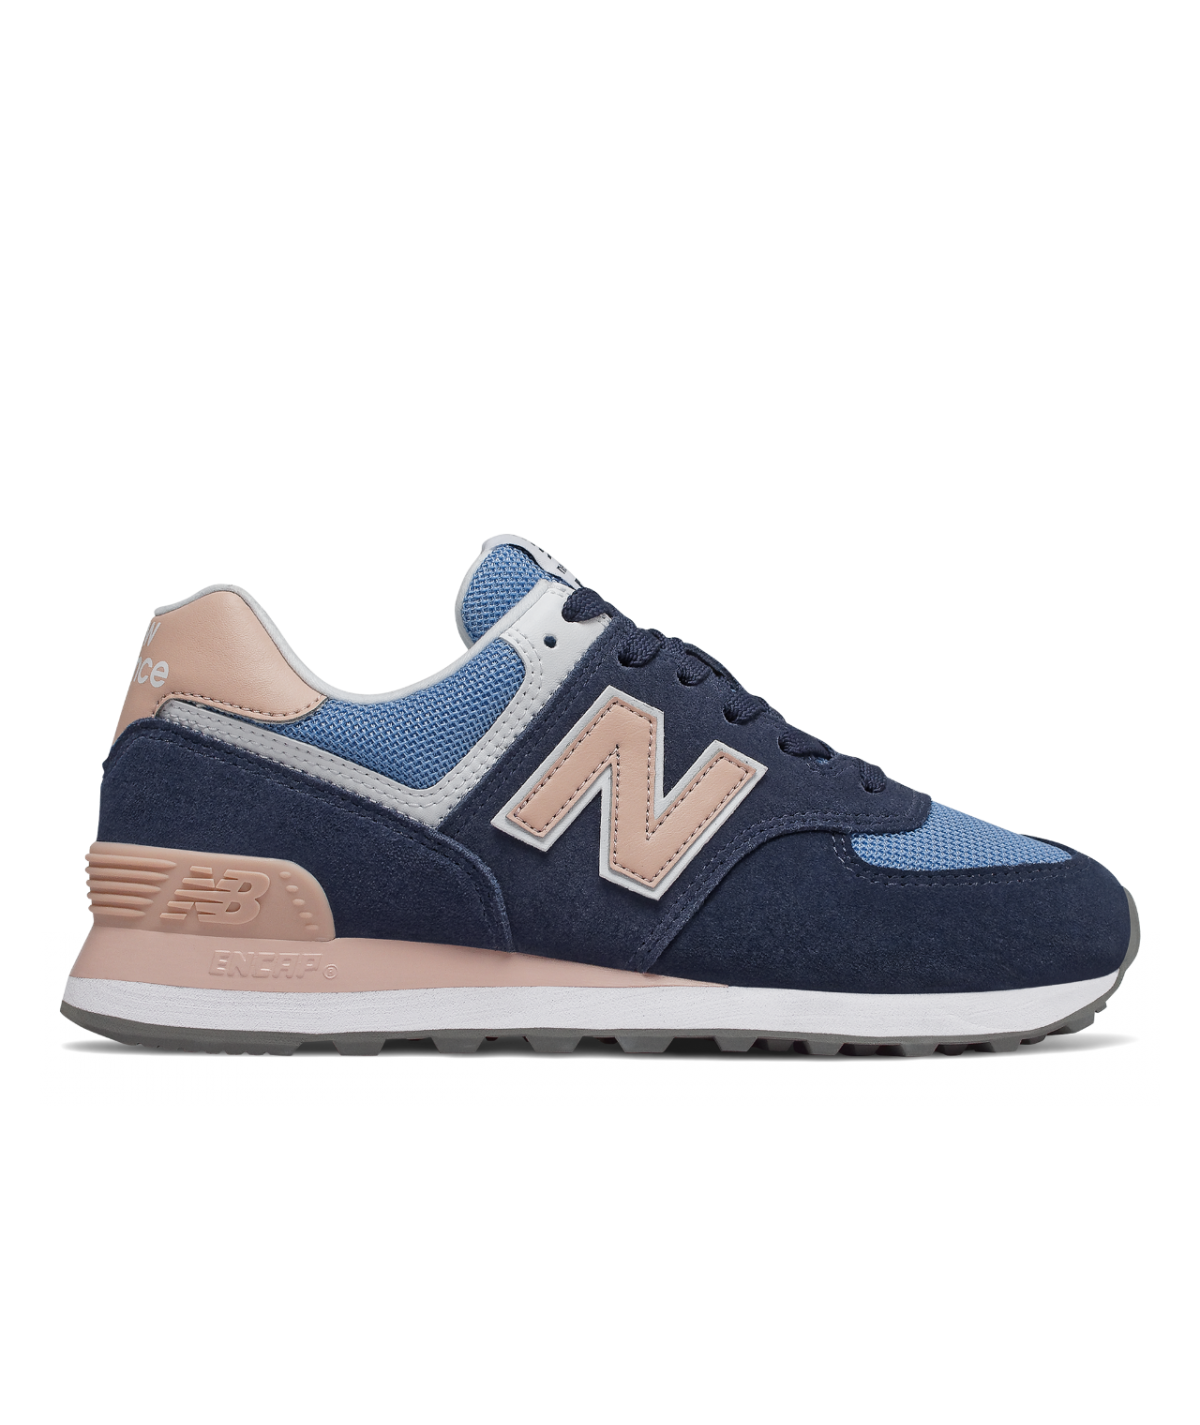 Buy New Balance 574 WND Sneaker damen blau rosa